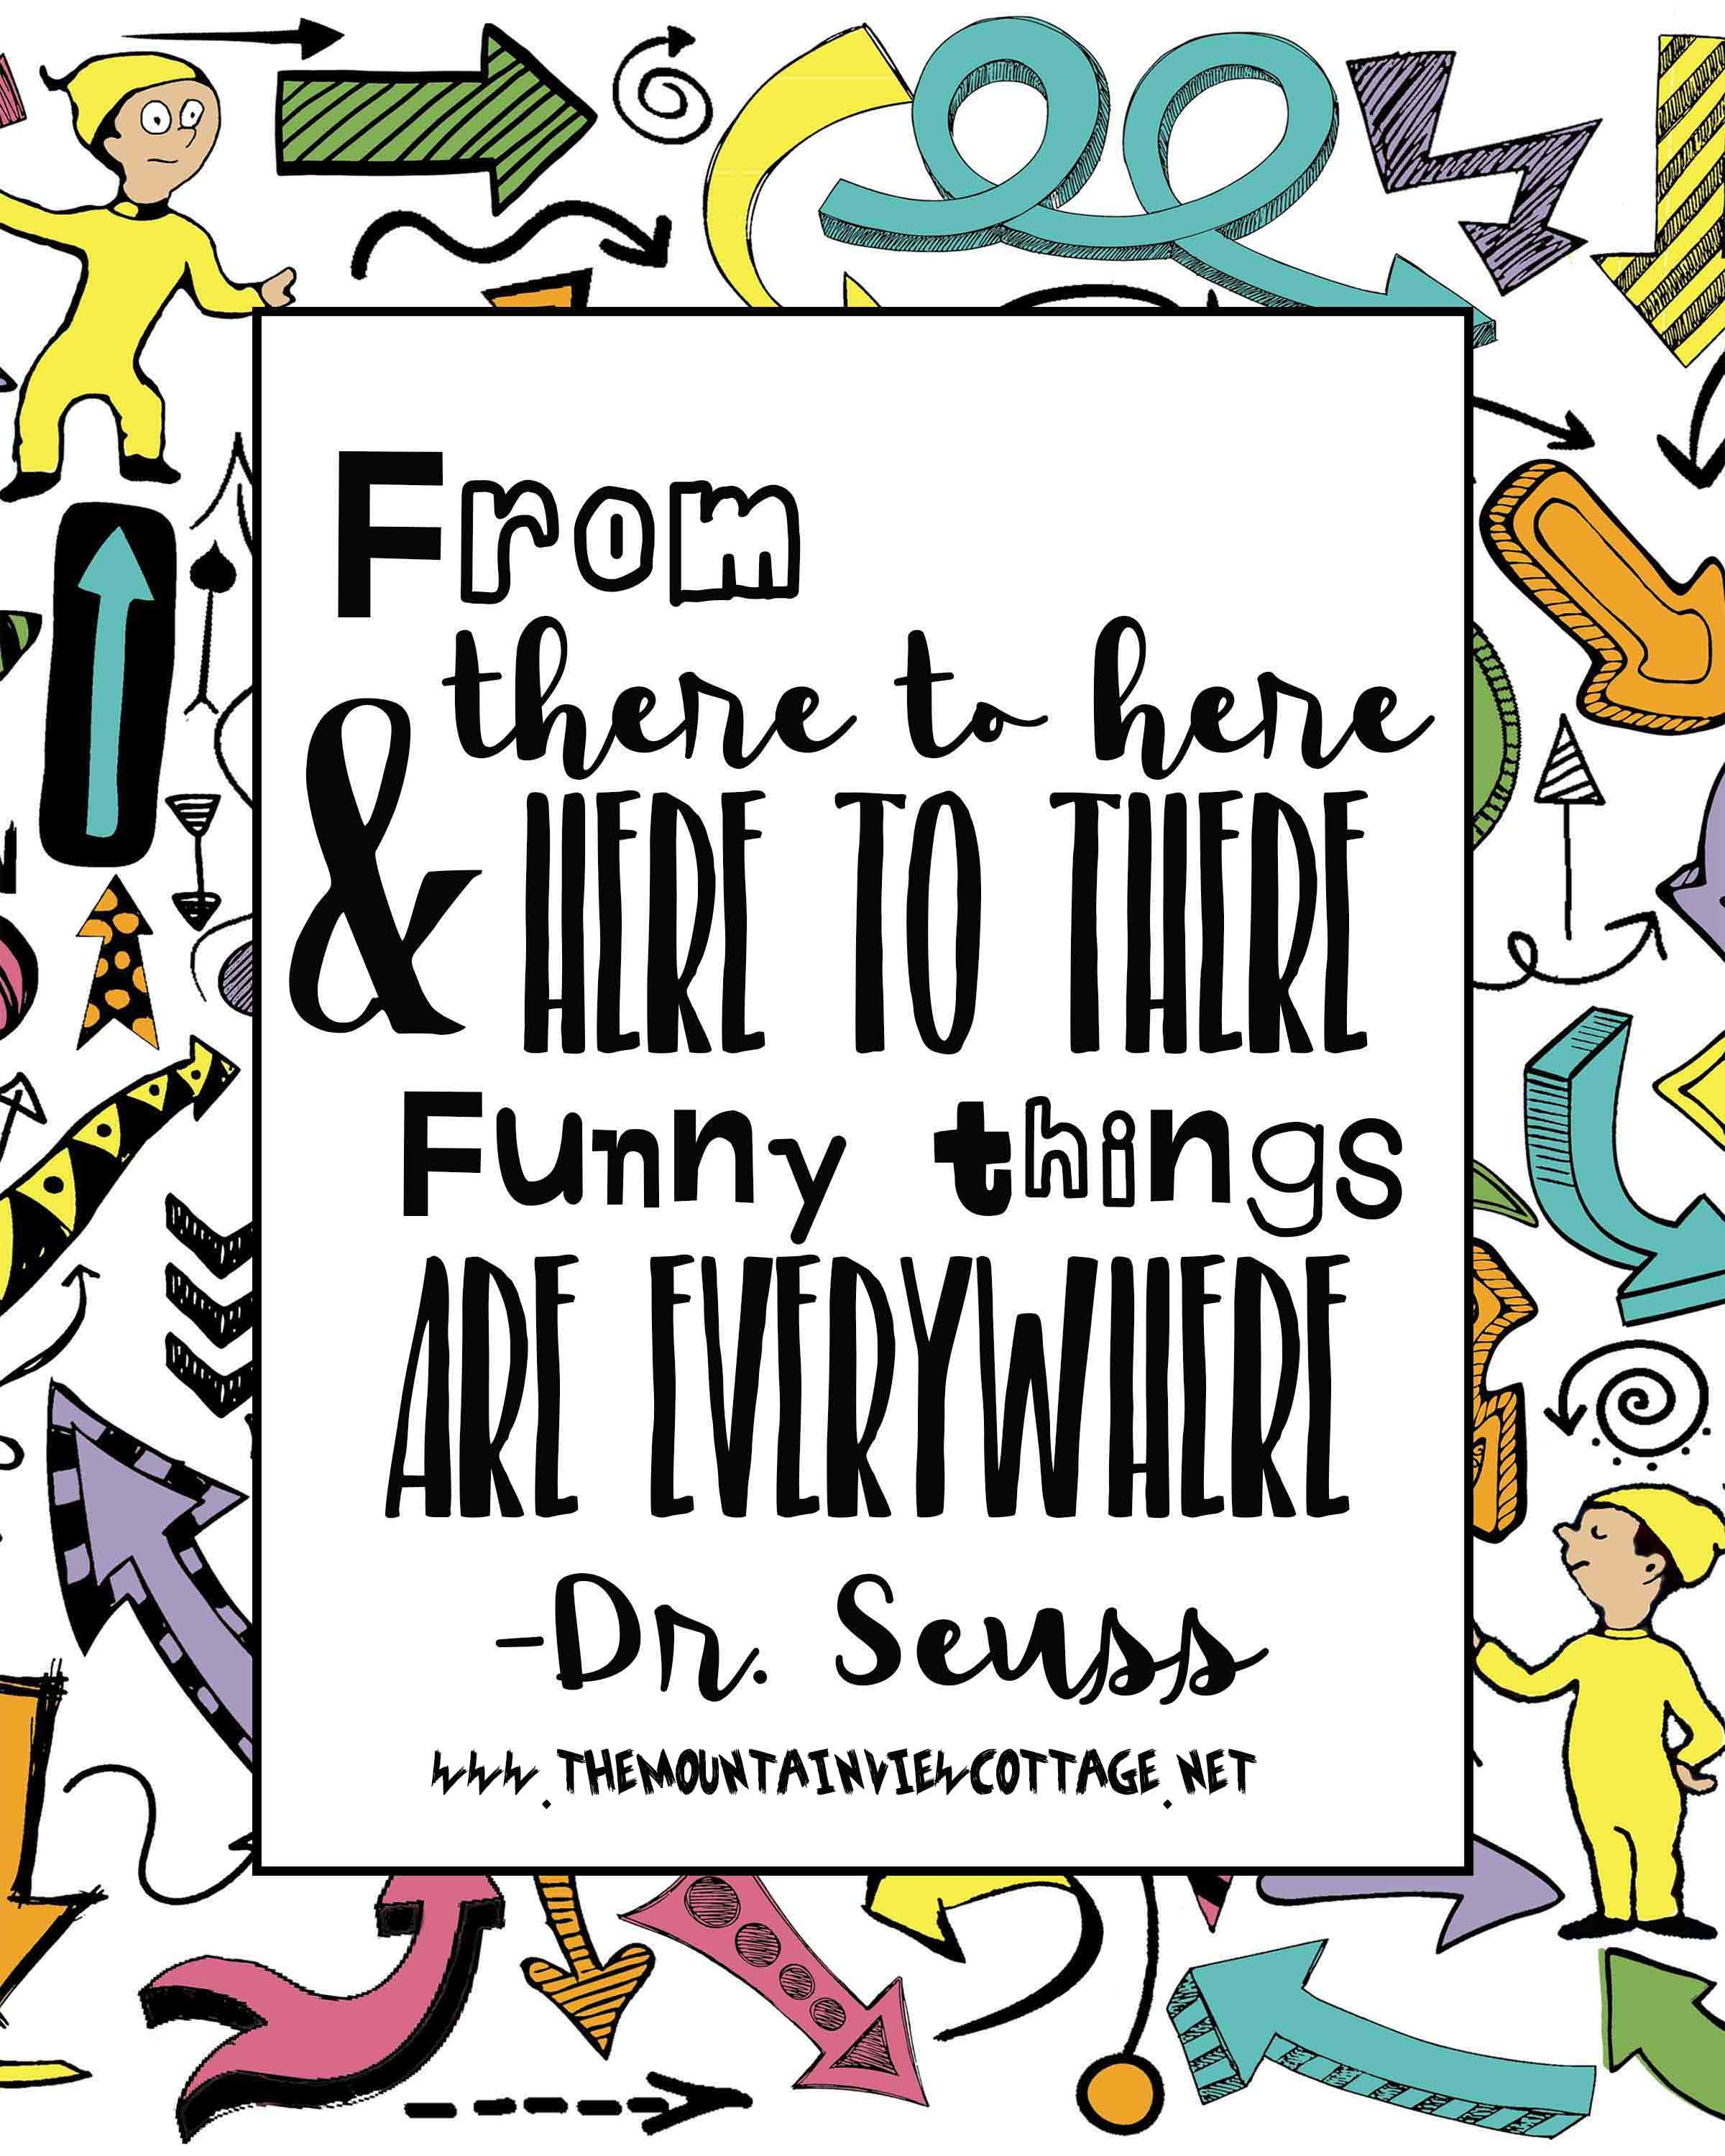 Dr.Seuss quote-funny quote-funny kid quotes-whimsical-from there to here from here to there funny things are everywhere